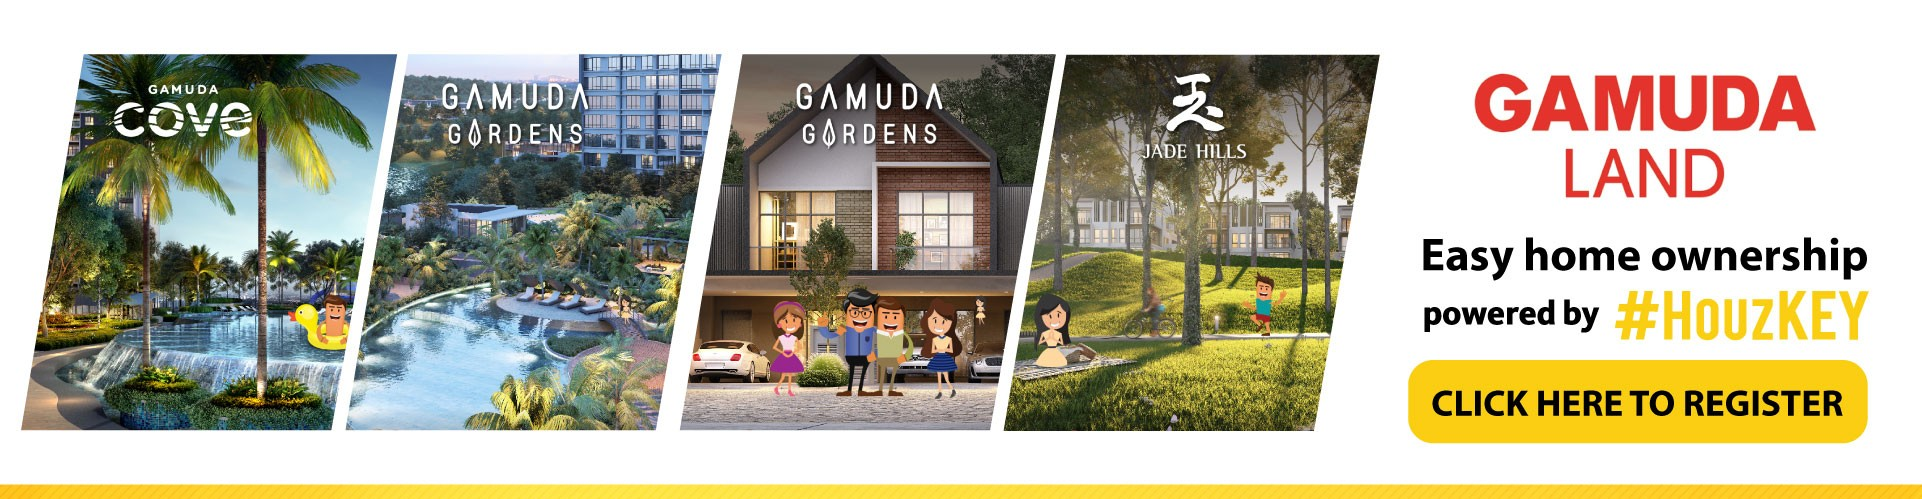 Gamuda Land homes - Register Here!